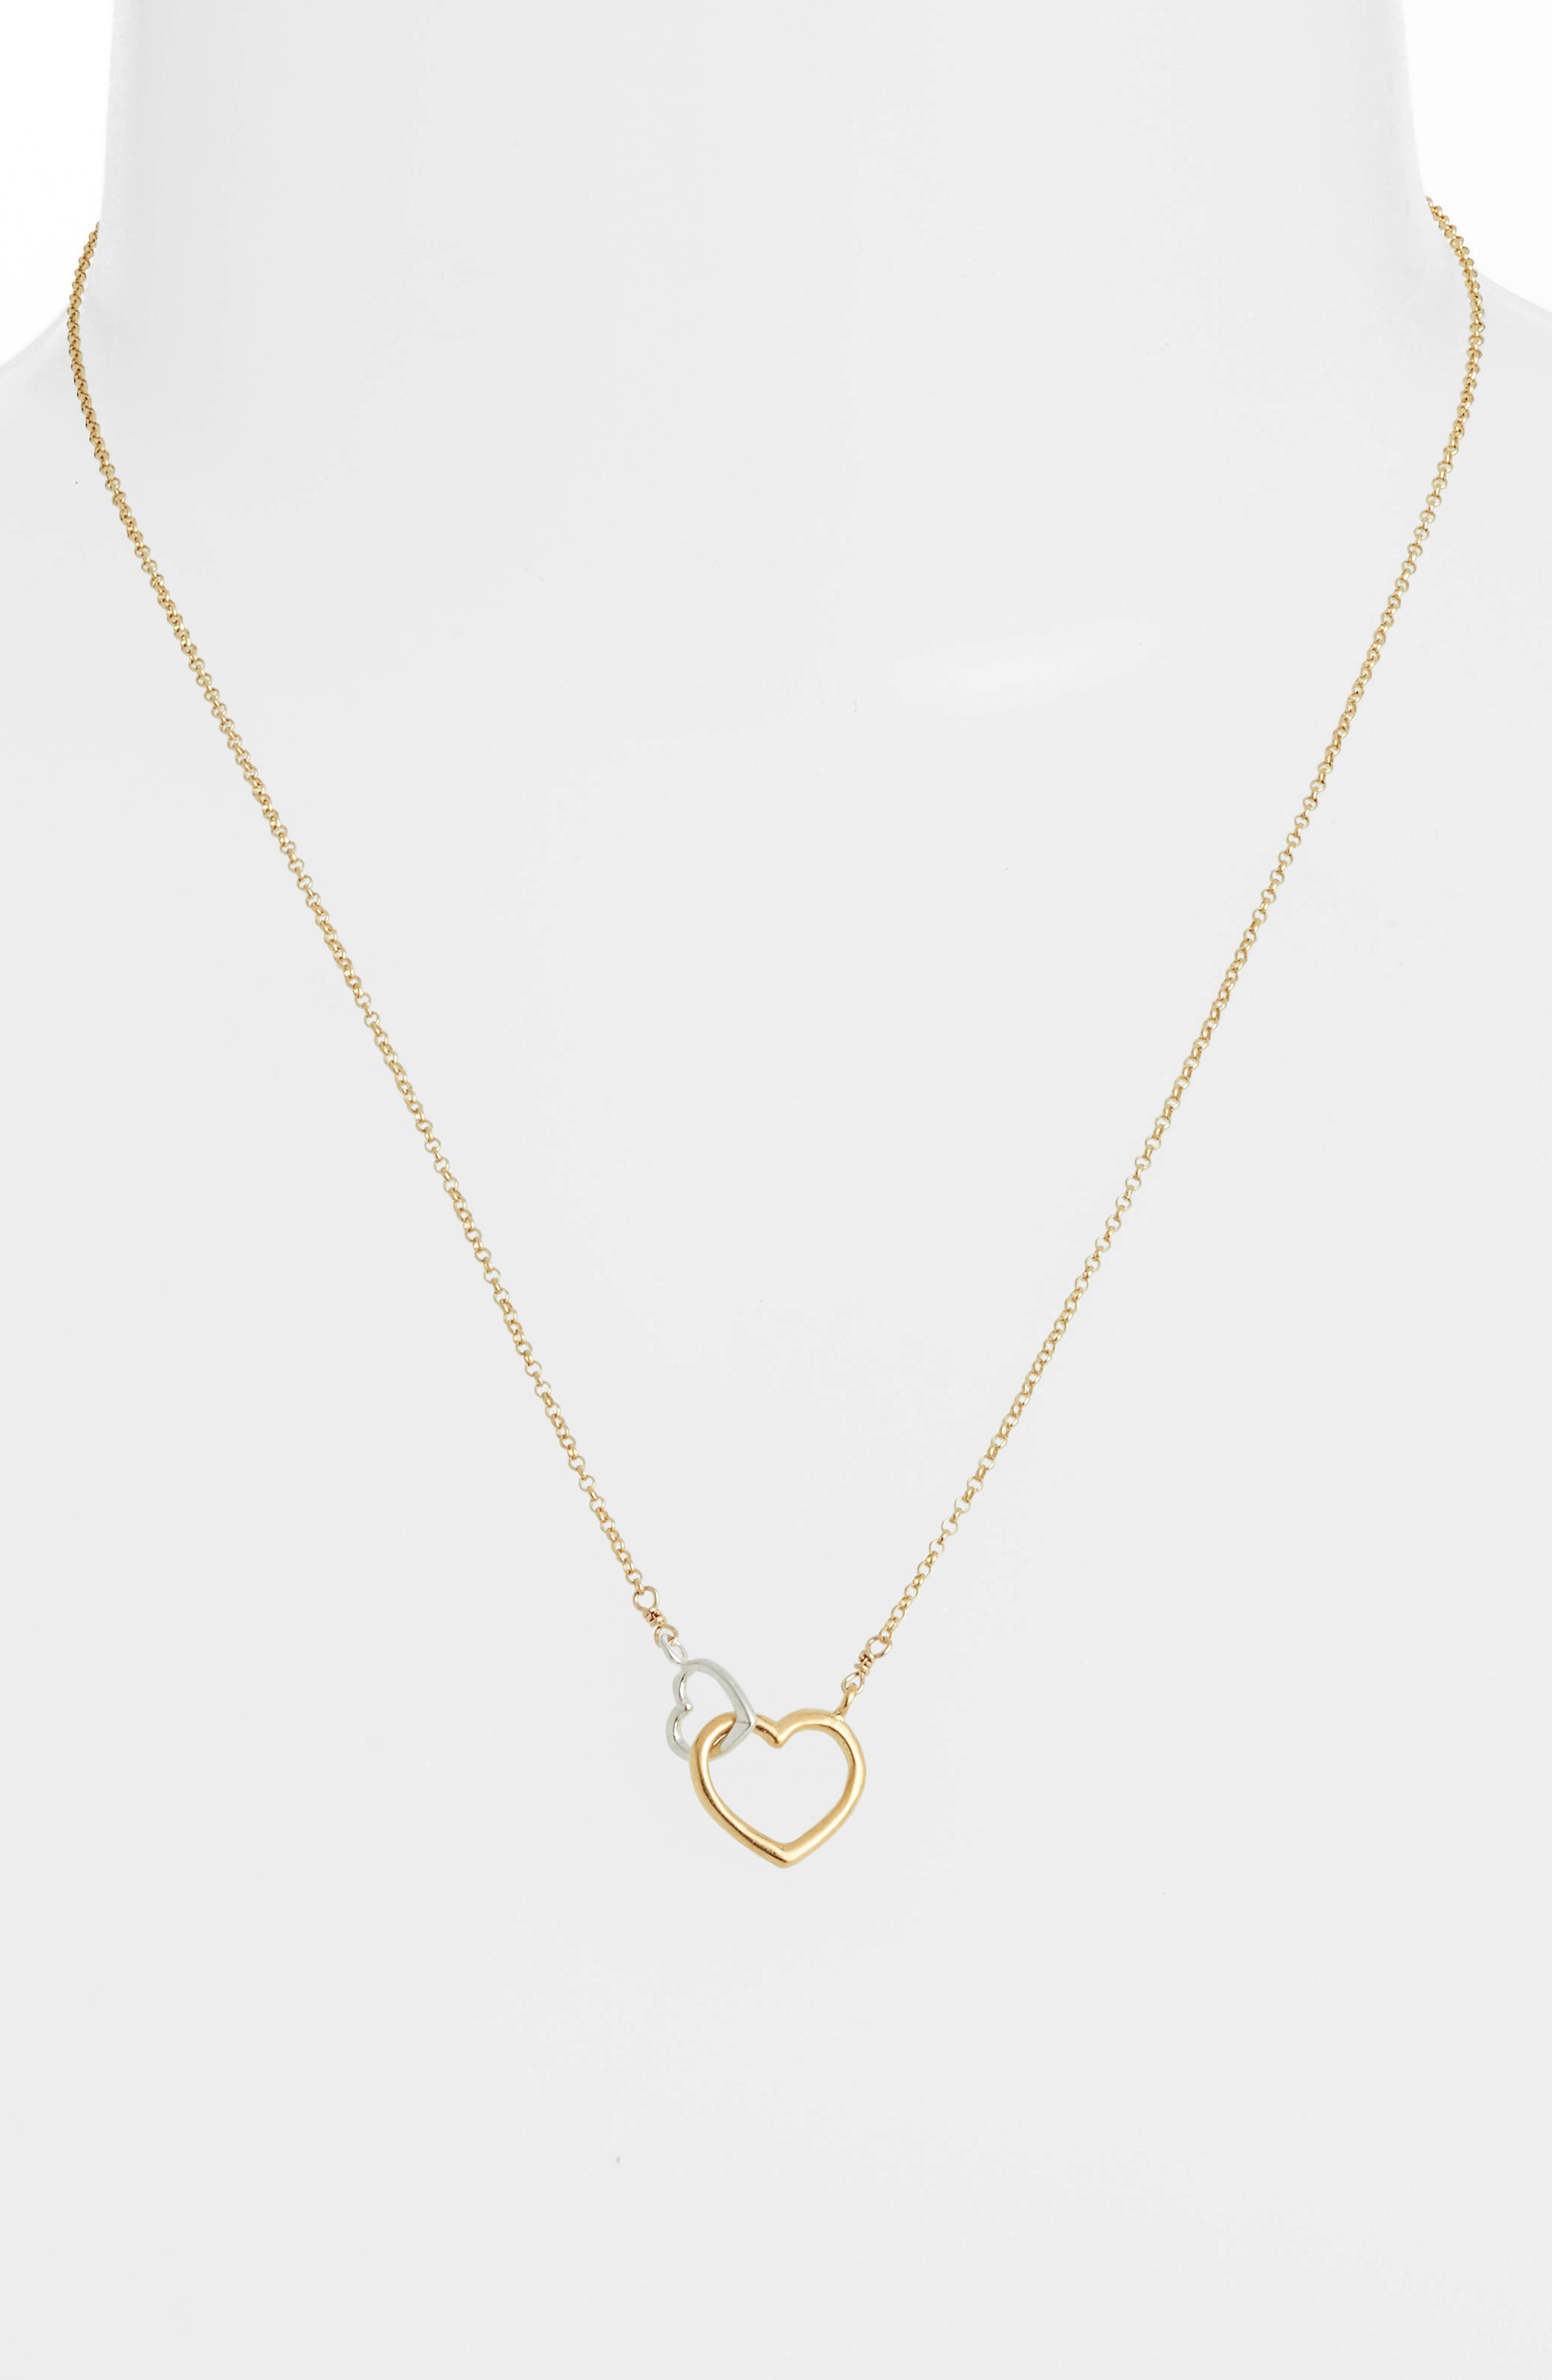 Mother + Daughter Linked Hearts Necklace,                             Alternate thumbnail 2, color,                             710